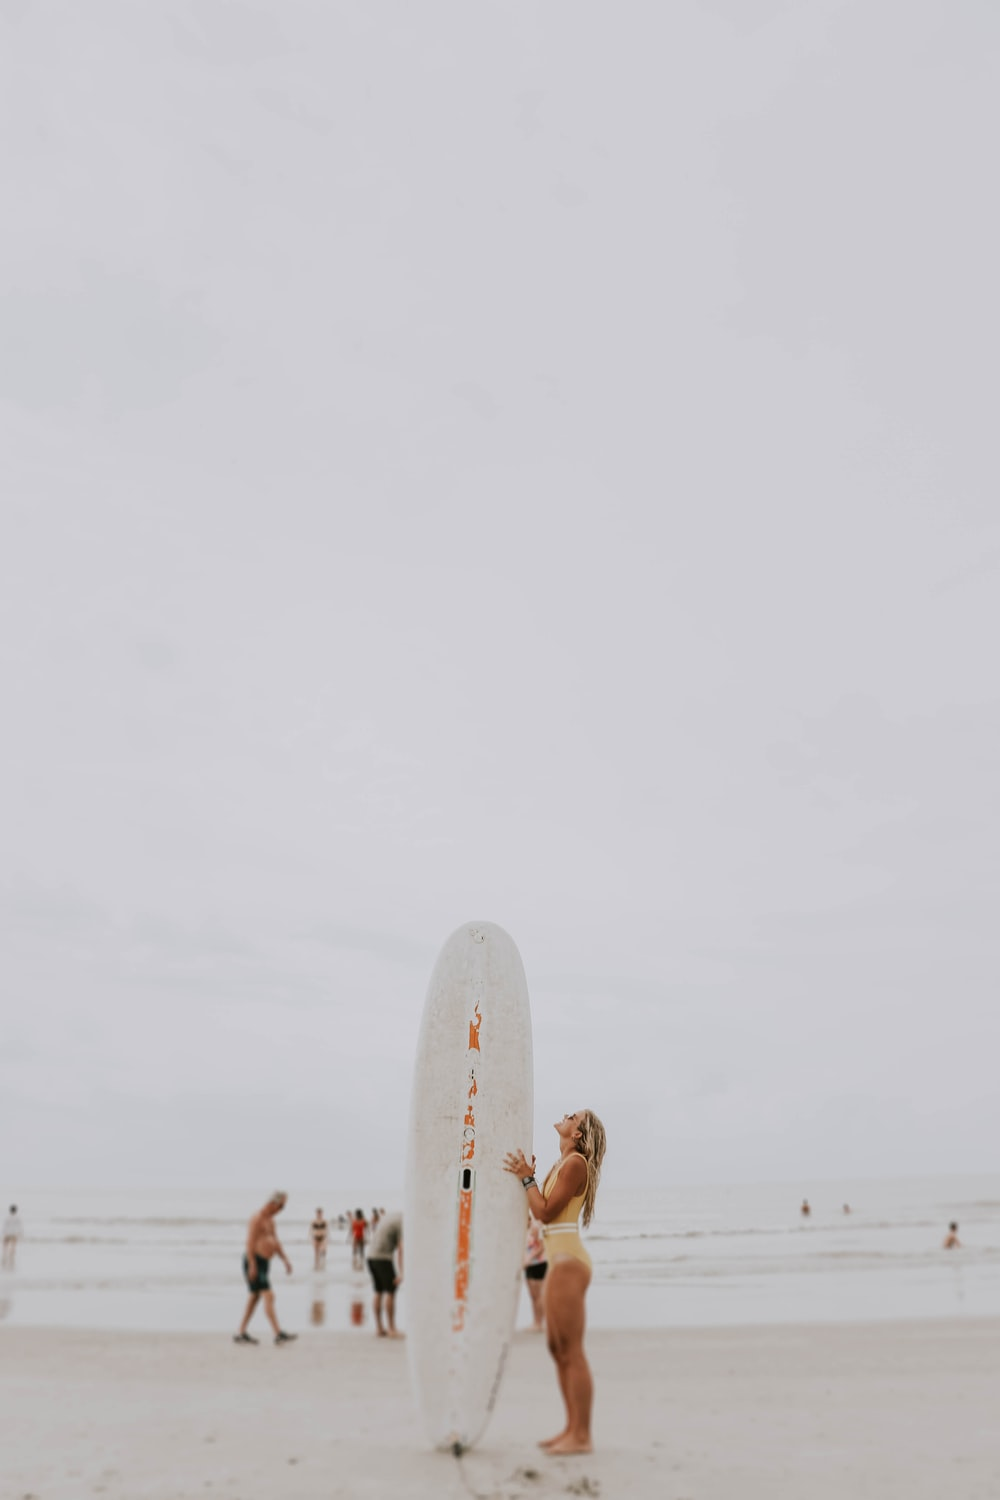 woman standing and holding surfboard near seashore